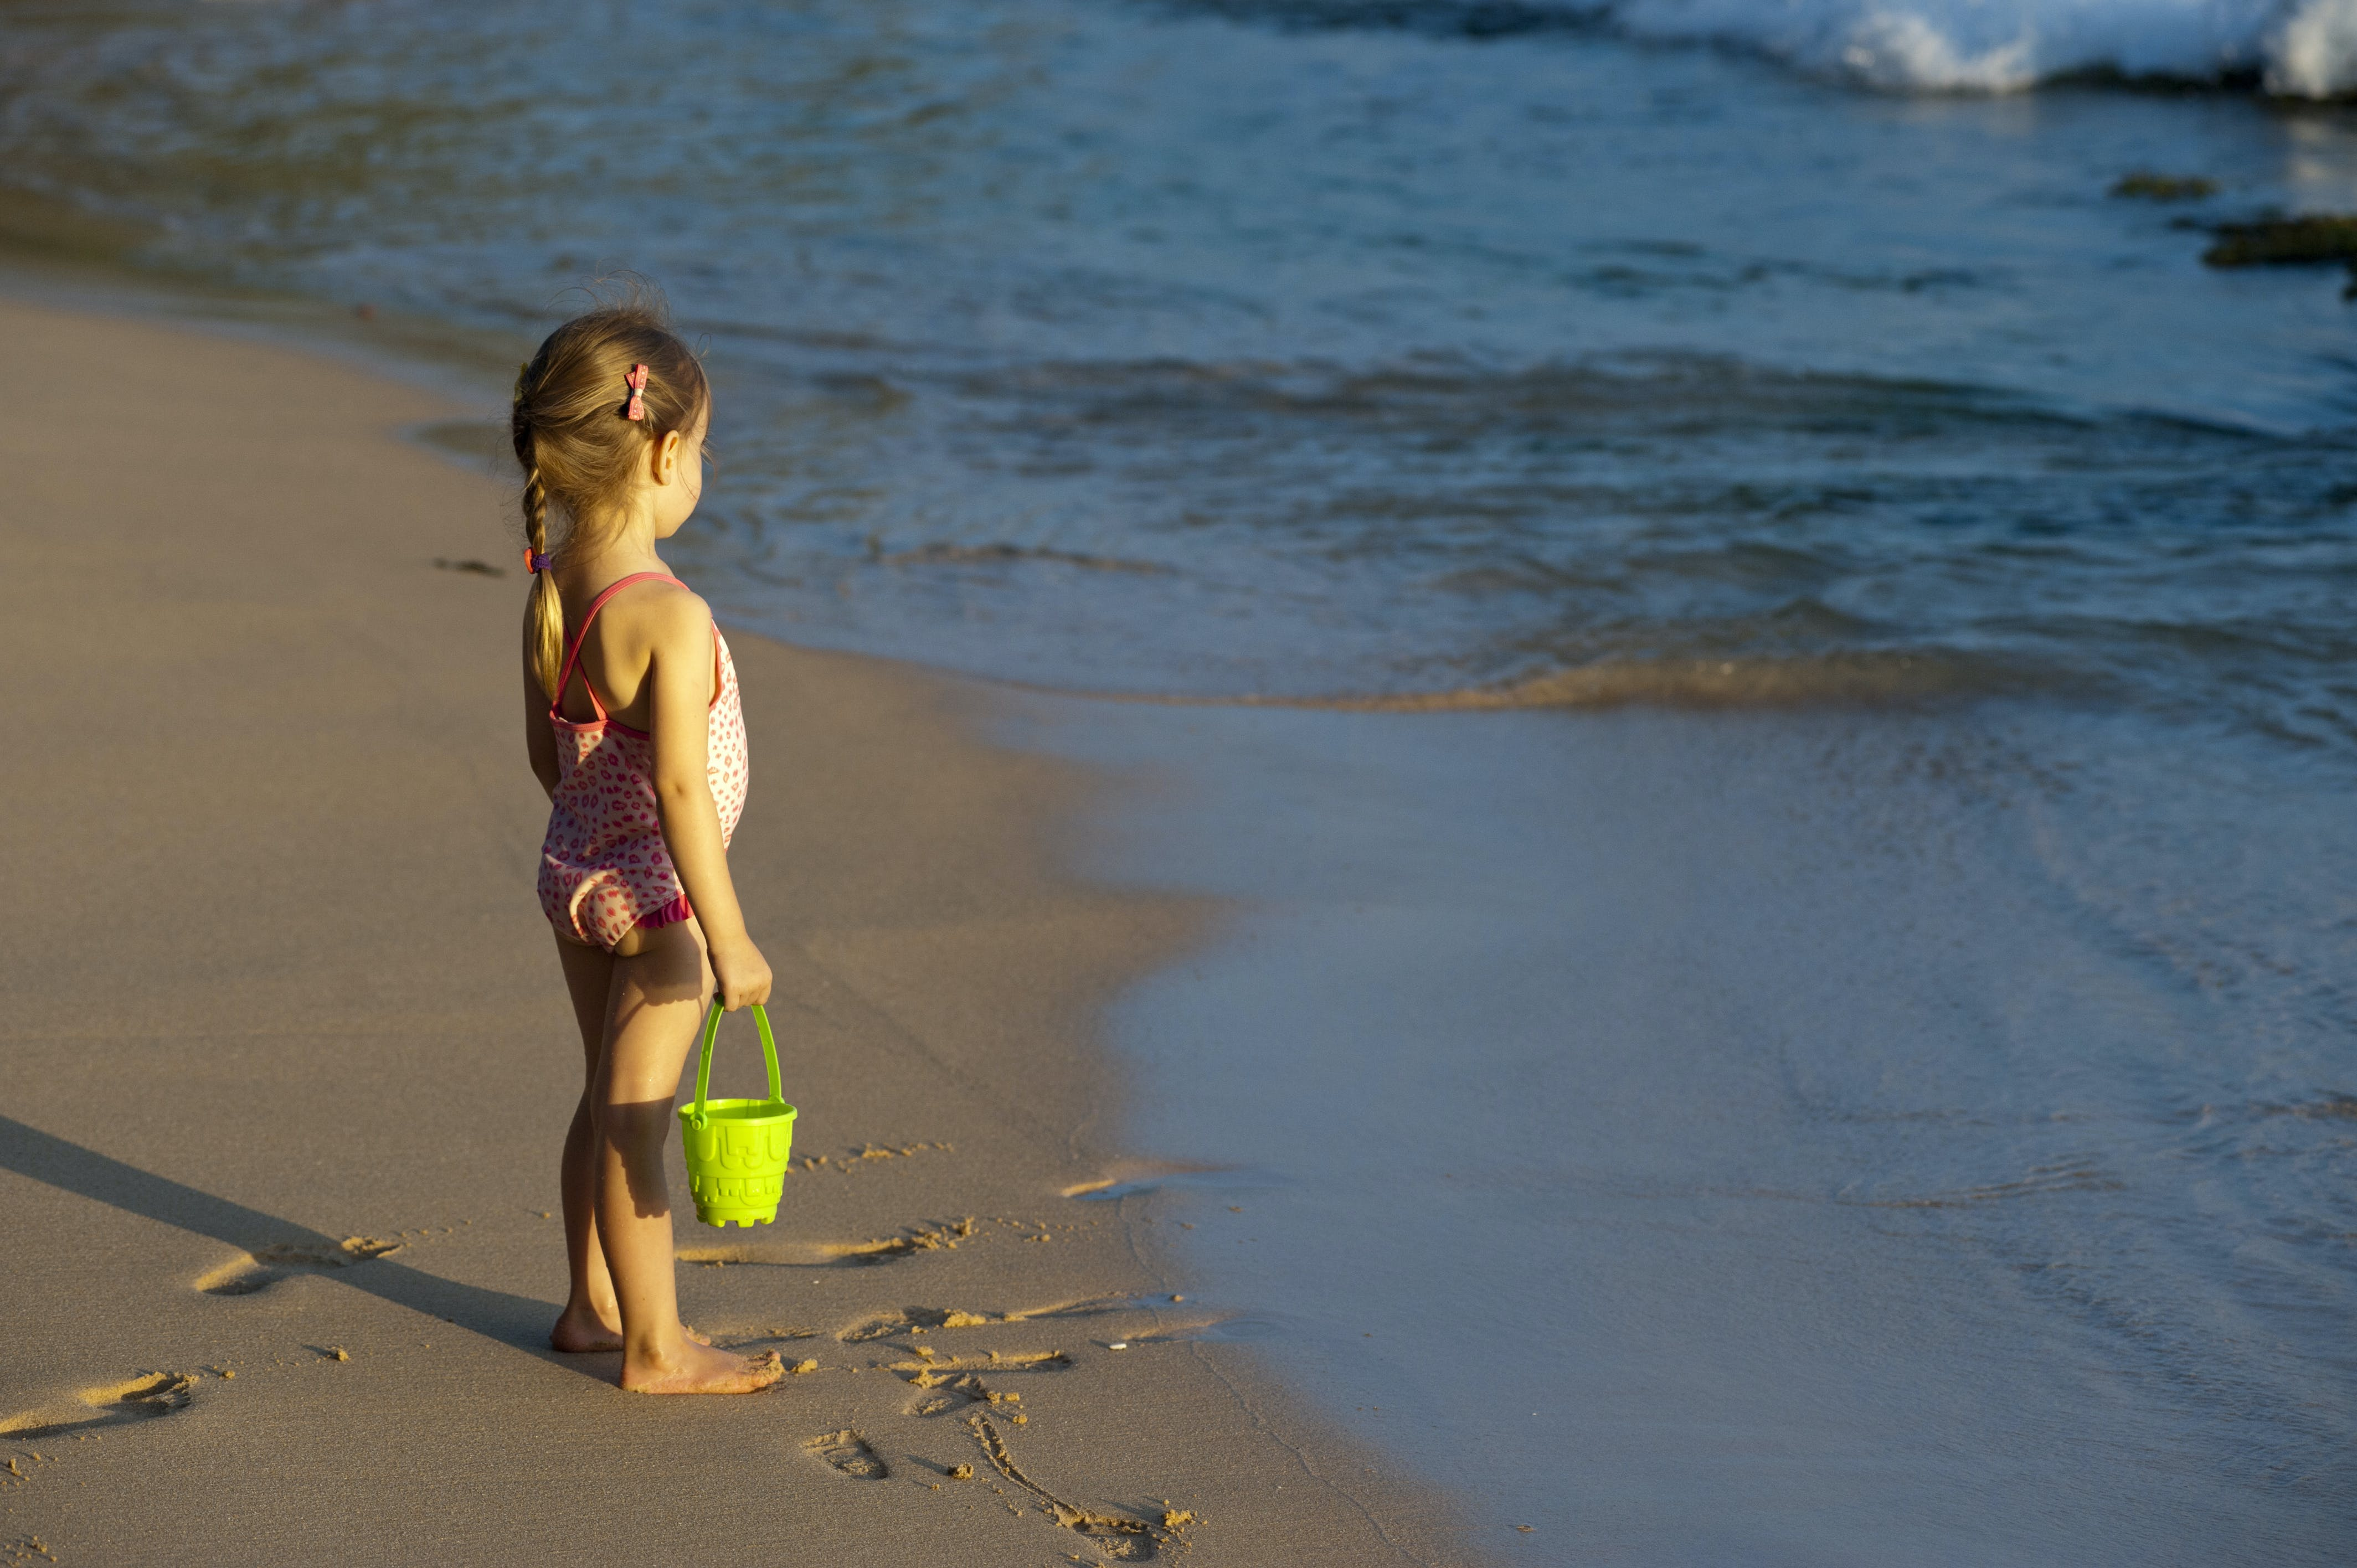 Girl Holding Bucket on Seashore